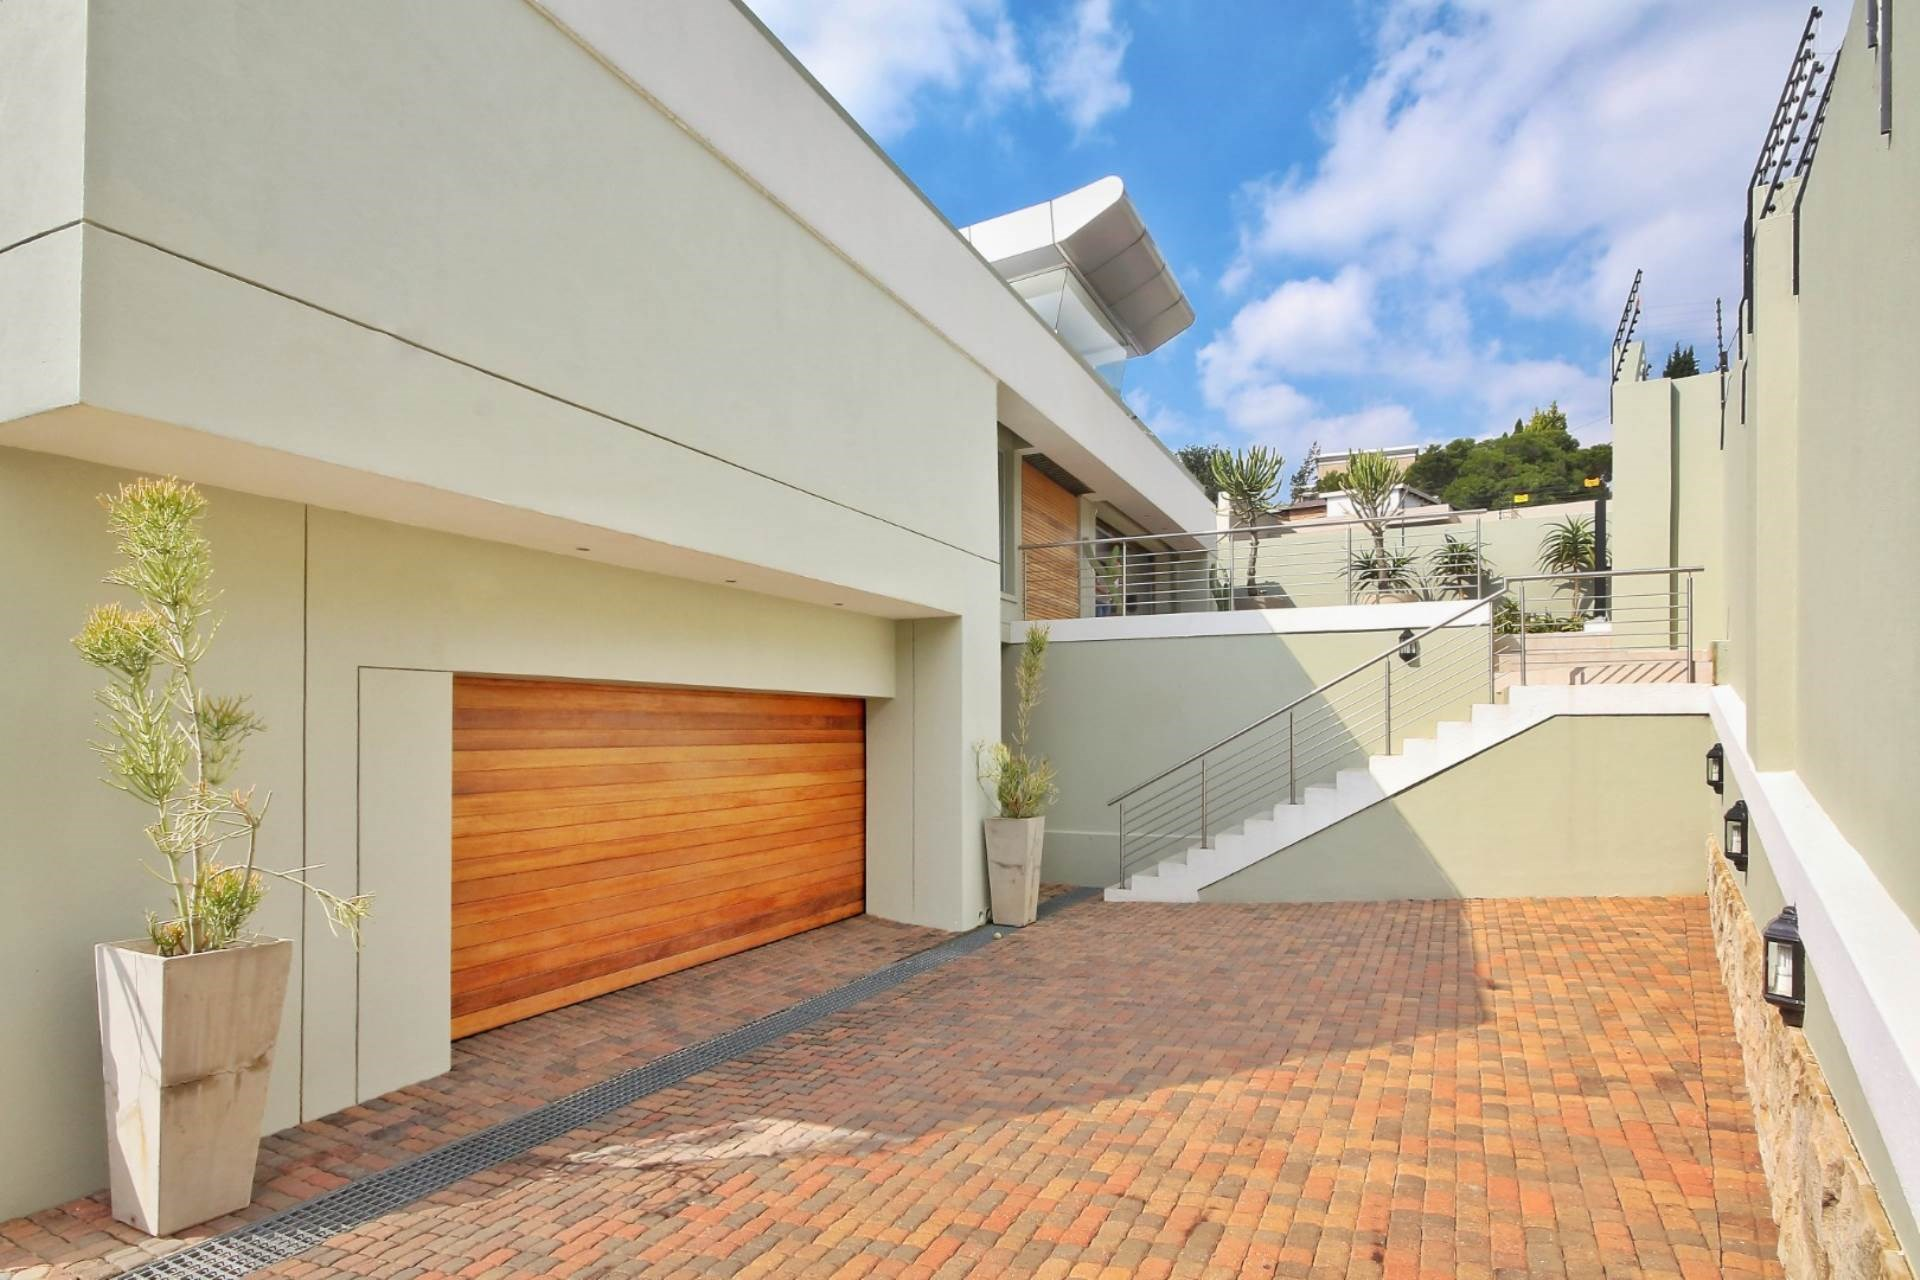 4 Bedroom House for Sale in Constantia Kloof